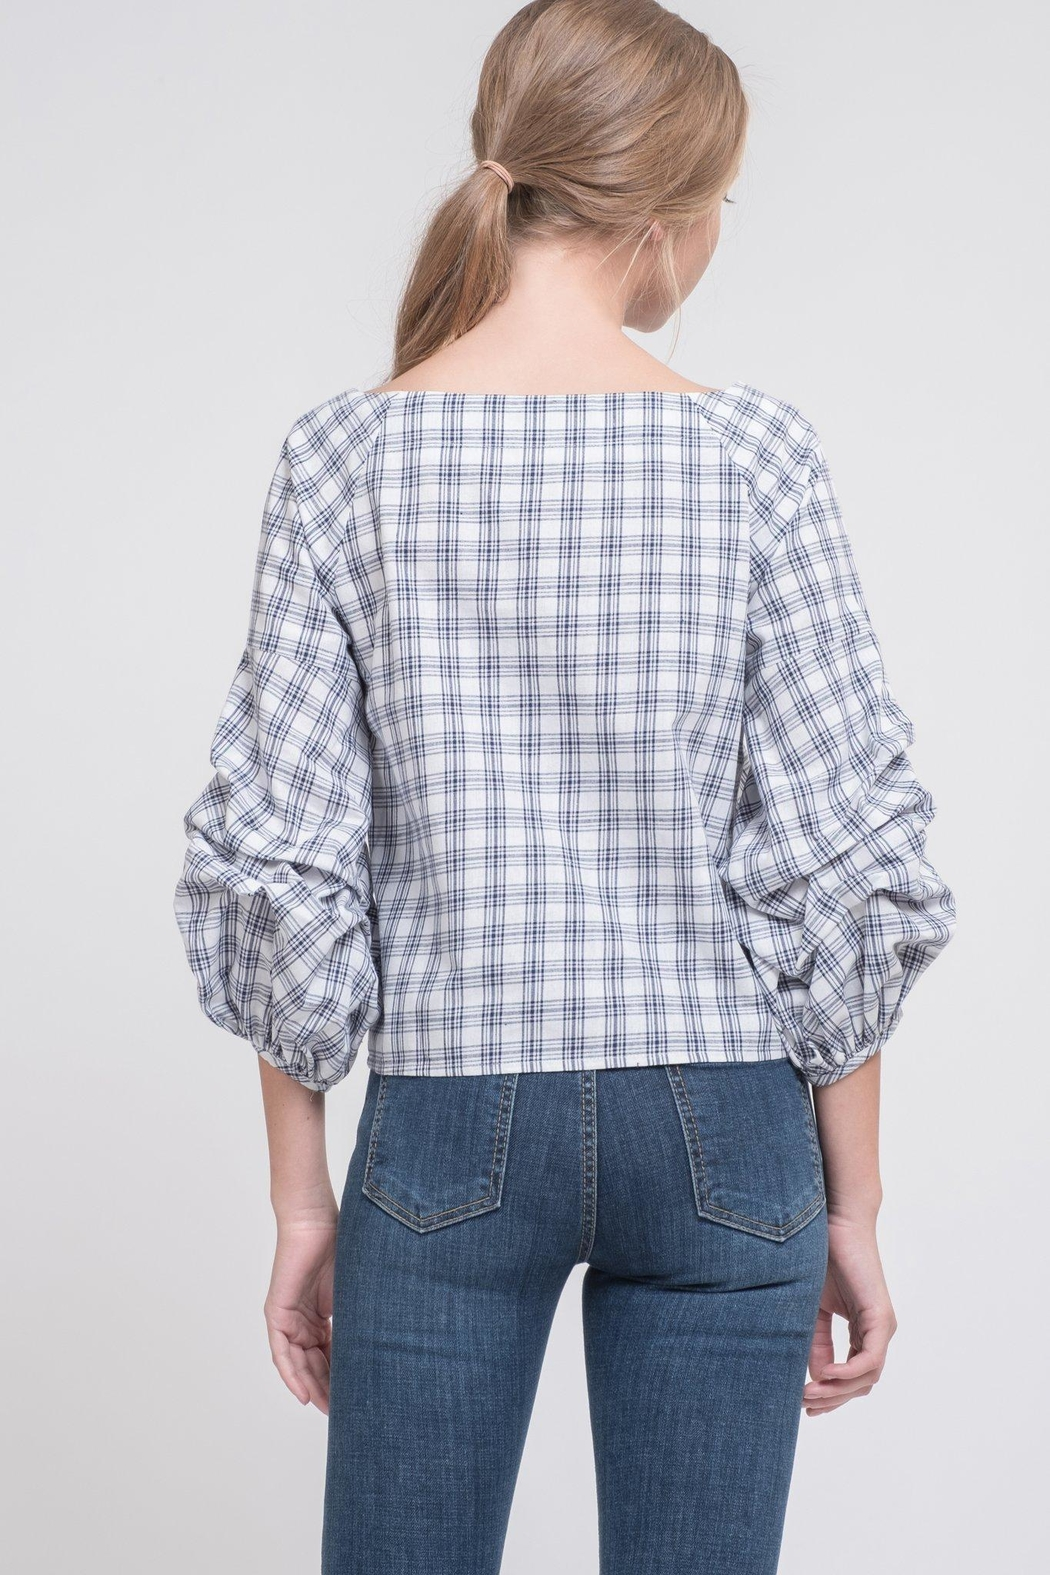 J.O.A. Plaid Puff Top - Front Full Image